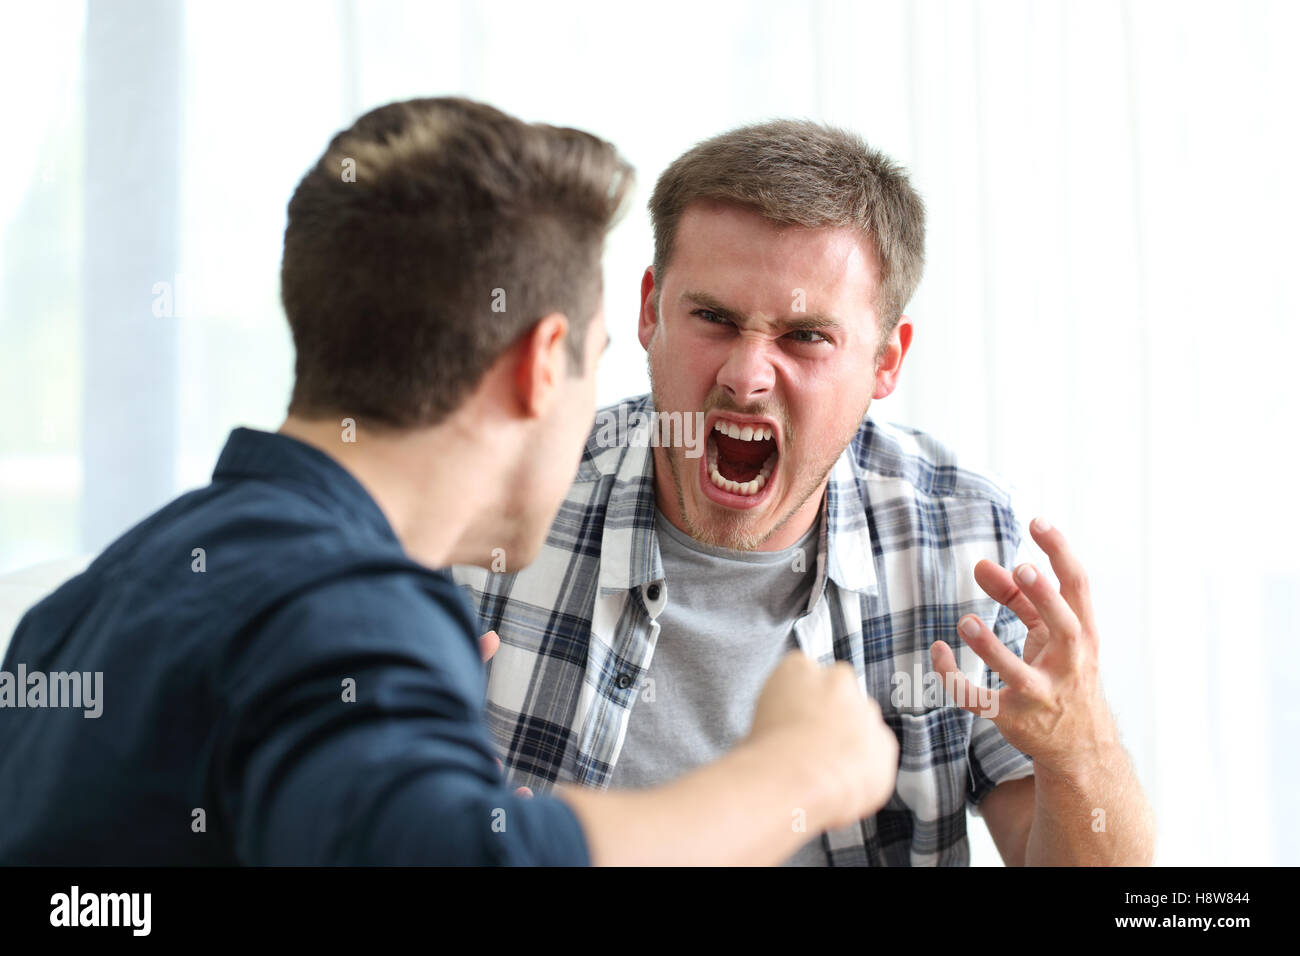 Two angry friends or roommates arguing and threatening in the living room at home - Stock Image